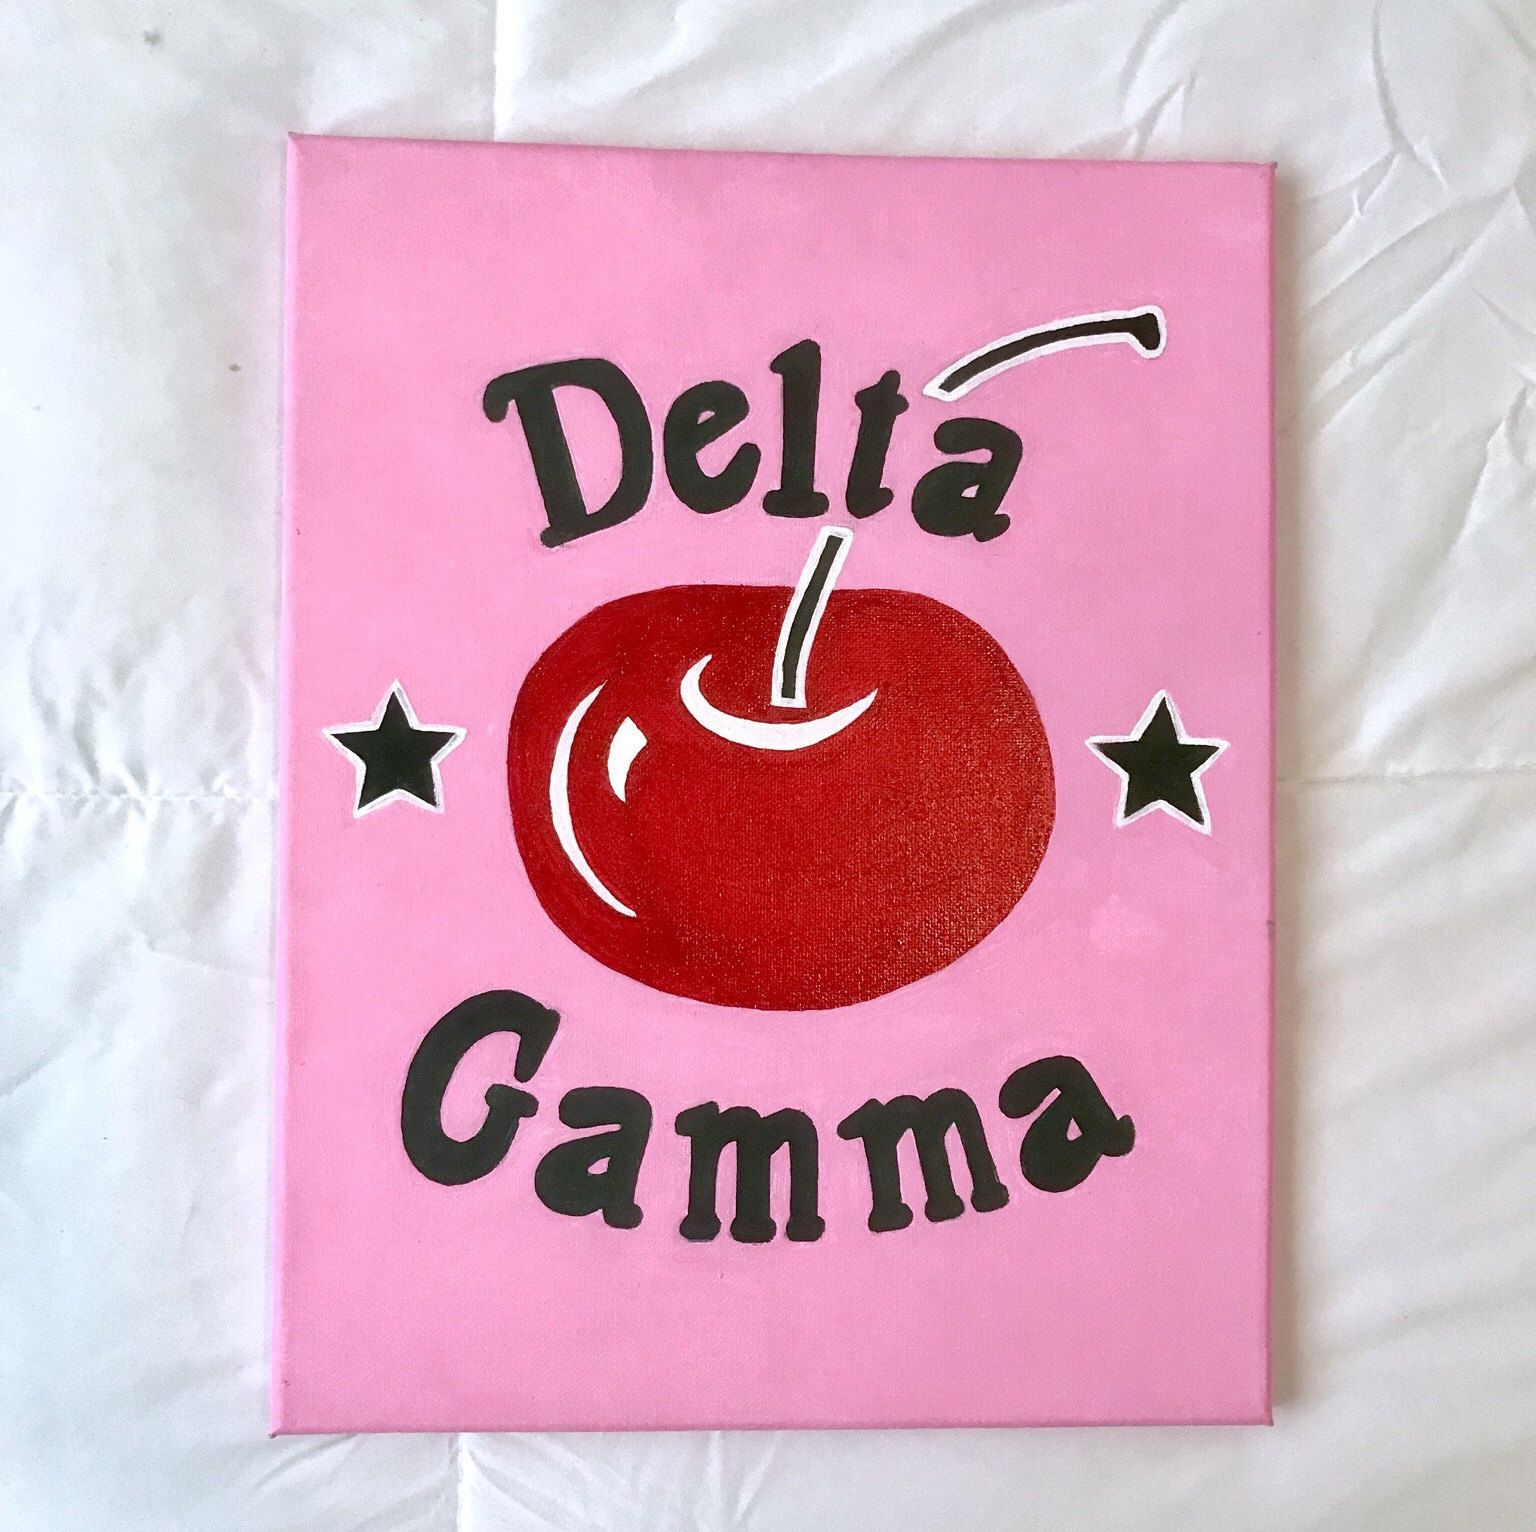 Excited to share the latest addition to my #etsy shop: Delta Gamma Canvas ~ Big Cherry #art #painting #sorority #deltagamma #canvas #cherry #biglittle #biglittlecanvas